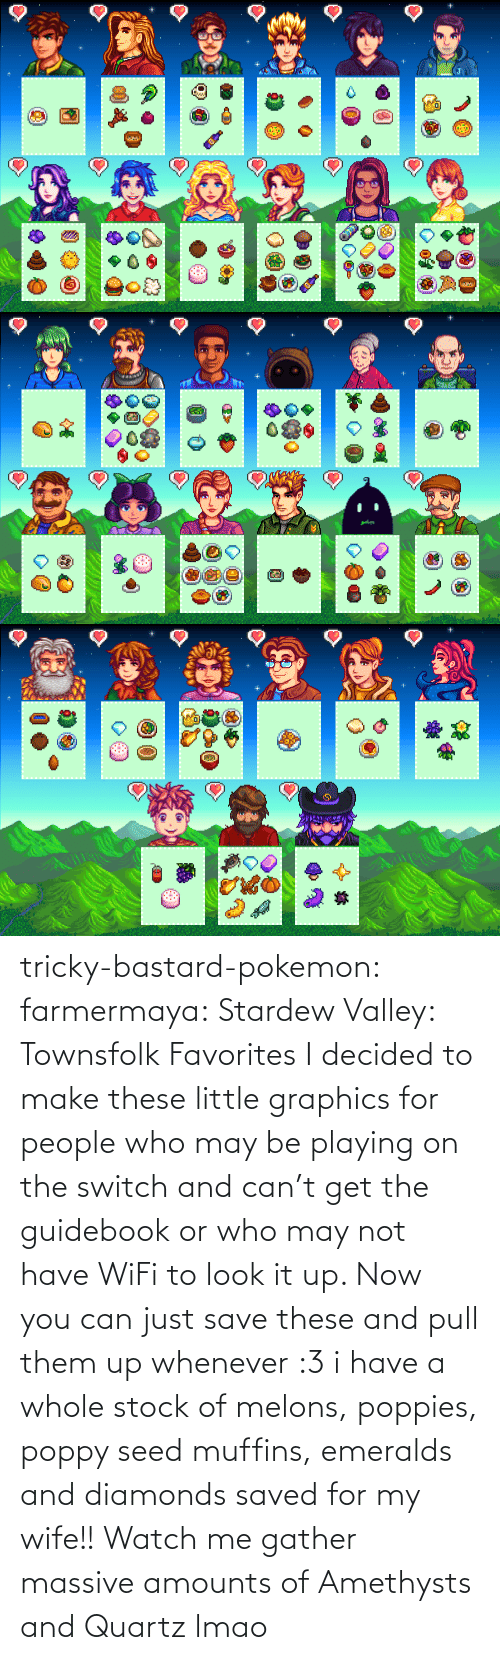 may: tricky-bastard-pokemon:  farmermaya: Stardew Valley: Townsfolk Favorites  I decided to make these little graphics for people who may be playing on the switch and can't get the guidebook or who may not have WiFi to look it up. Now you can just save these and pull them up whenever :3   i have a whole stock of melons, poppies, poppy seed muffins, emeralds and diamonds saved for my wife!!    Watch me gather massive amounts of Amethysts and Quartz lmao